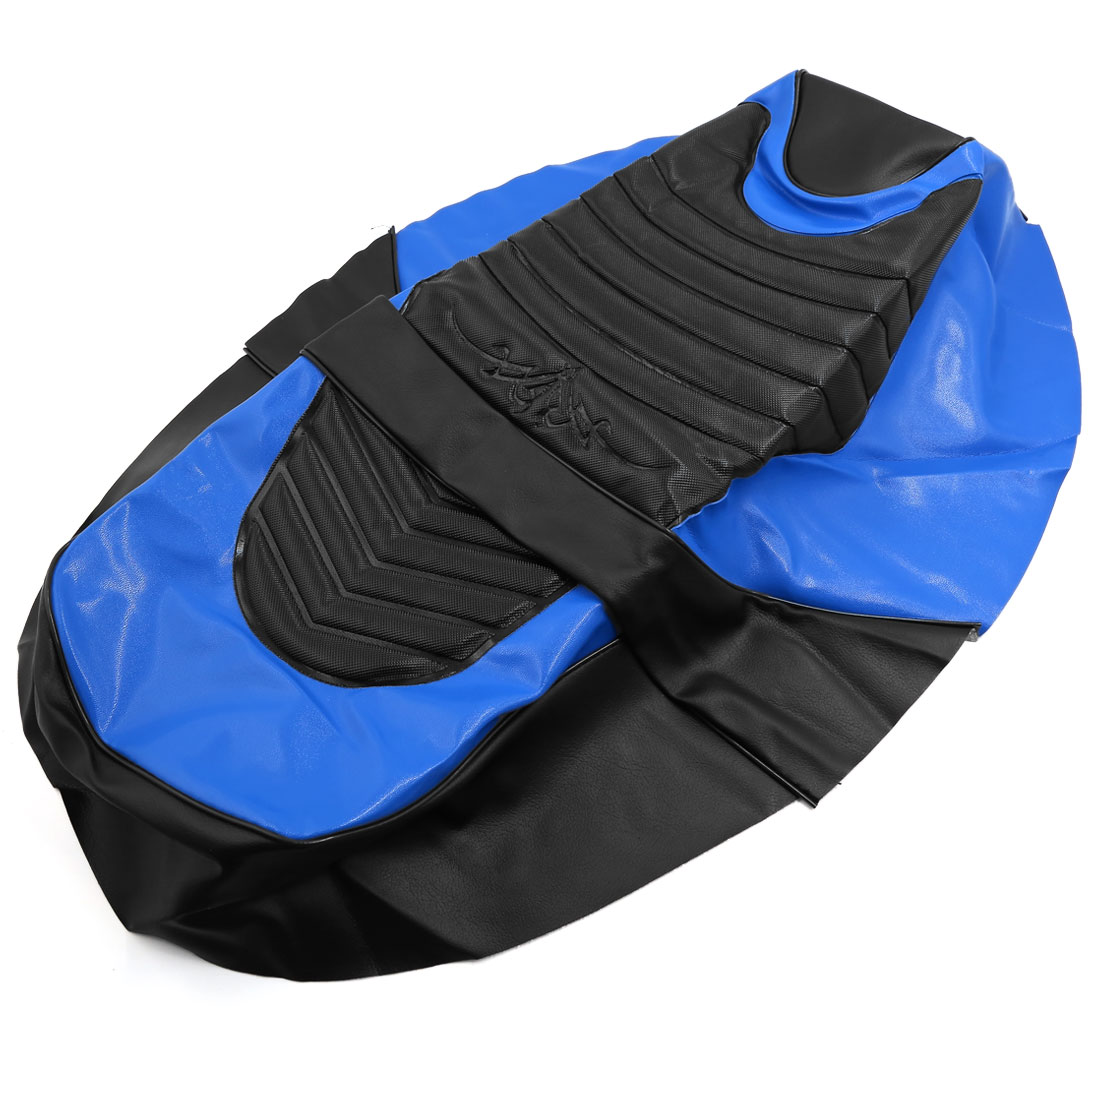 Black Blue Waterproof Dustproof Woman Motorcycle Seat Cover Protector for Yamaha